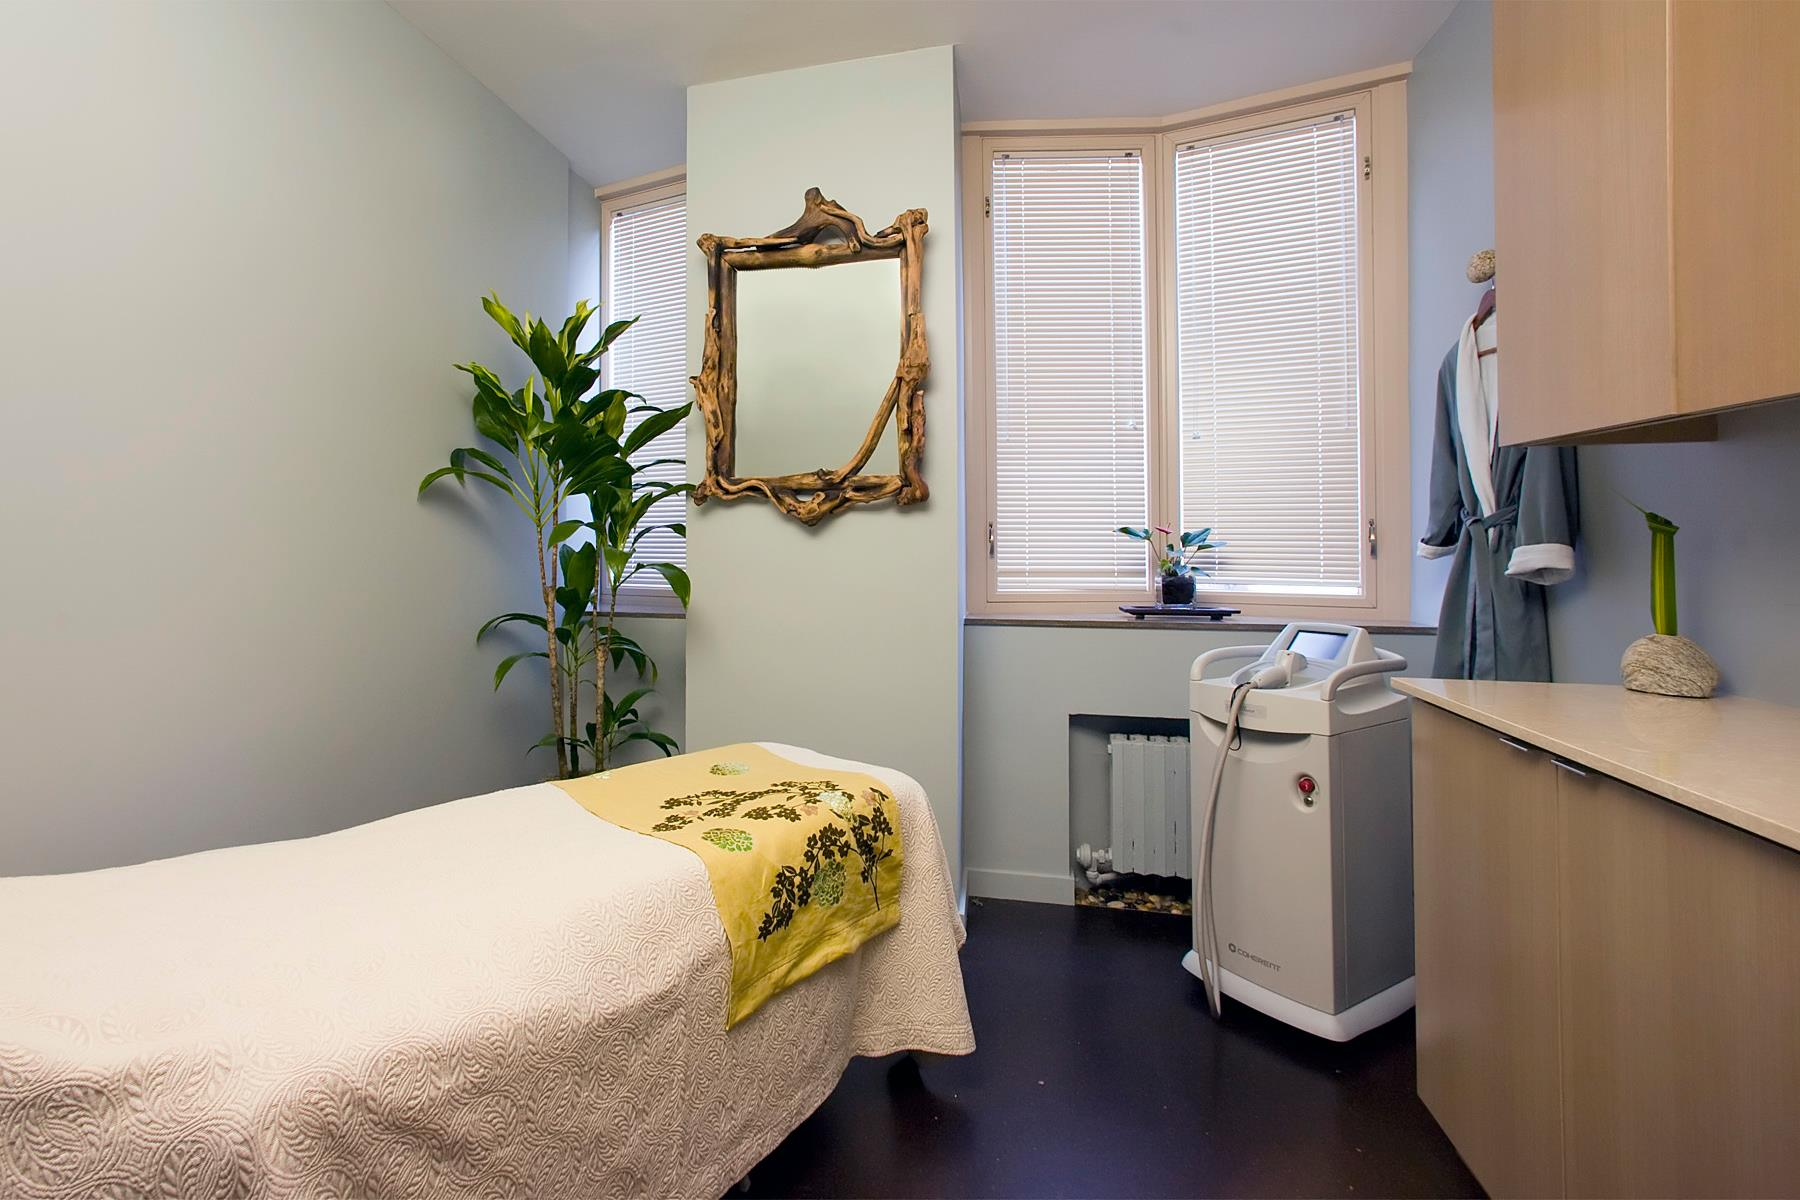 A treatment room at Mitchell's spa